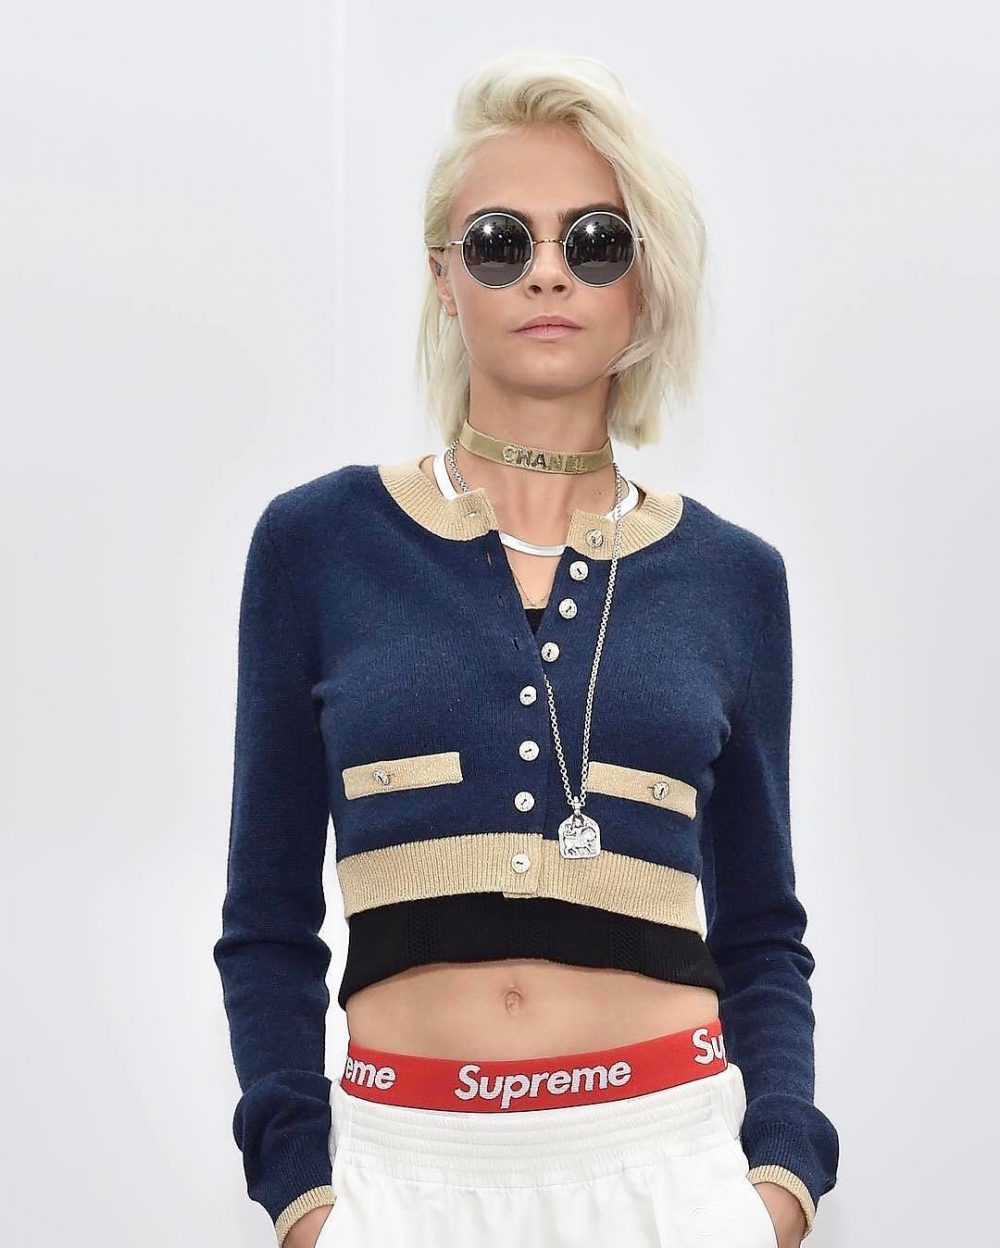 SPOTTED: Cara Delevingne in Men's Supreme Boxers and Chanel